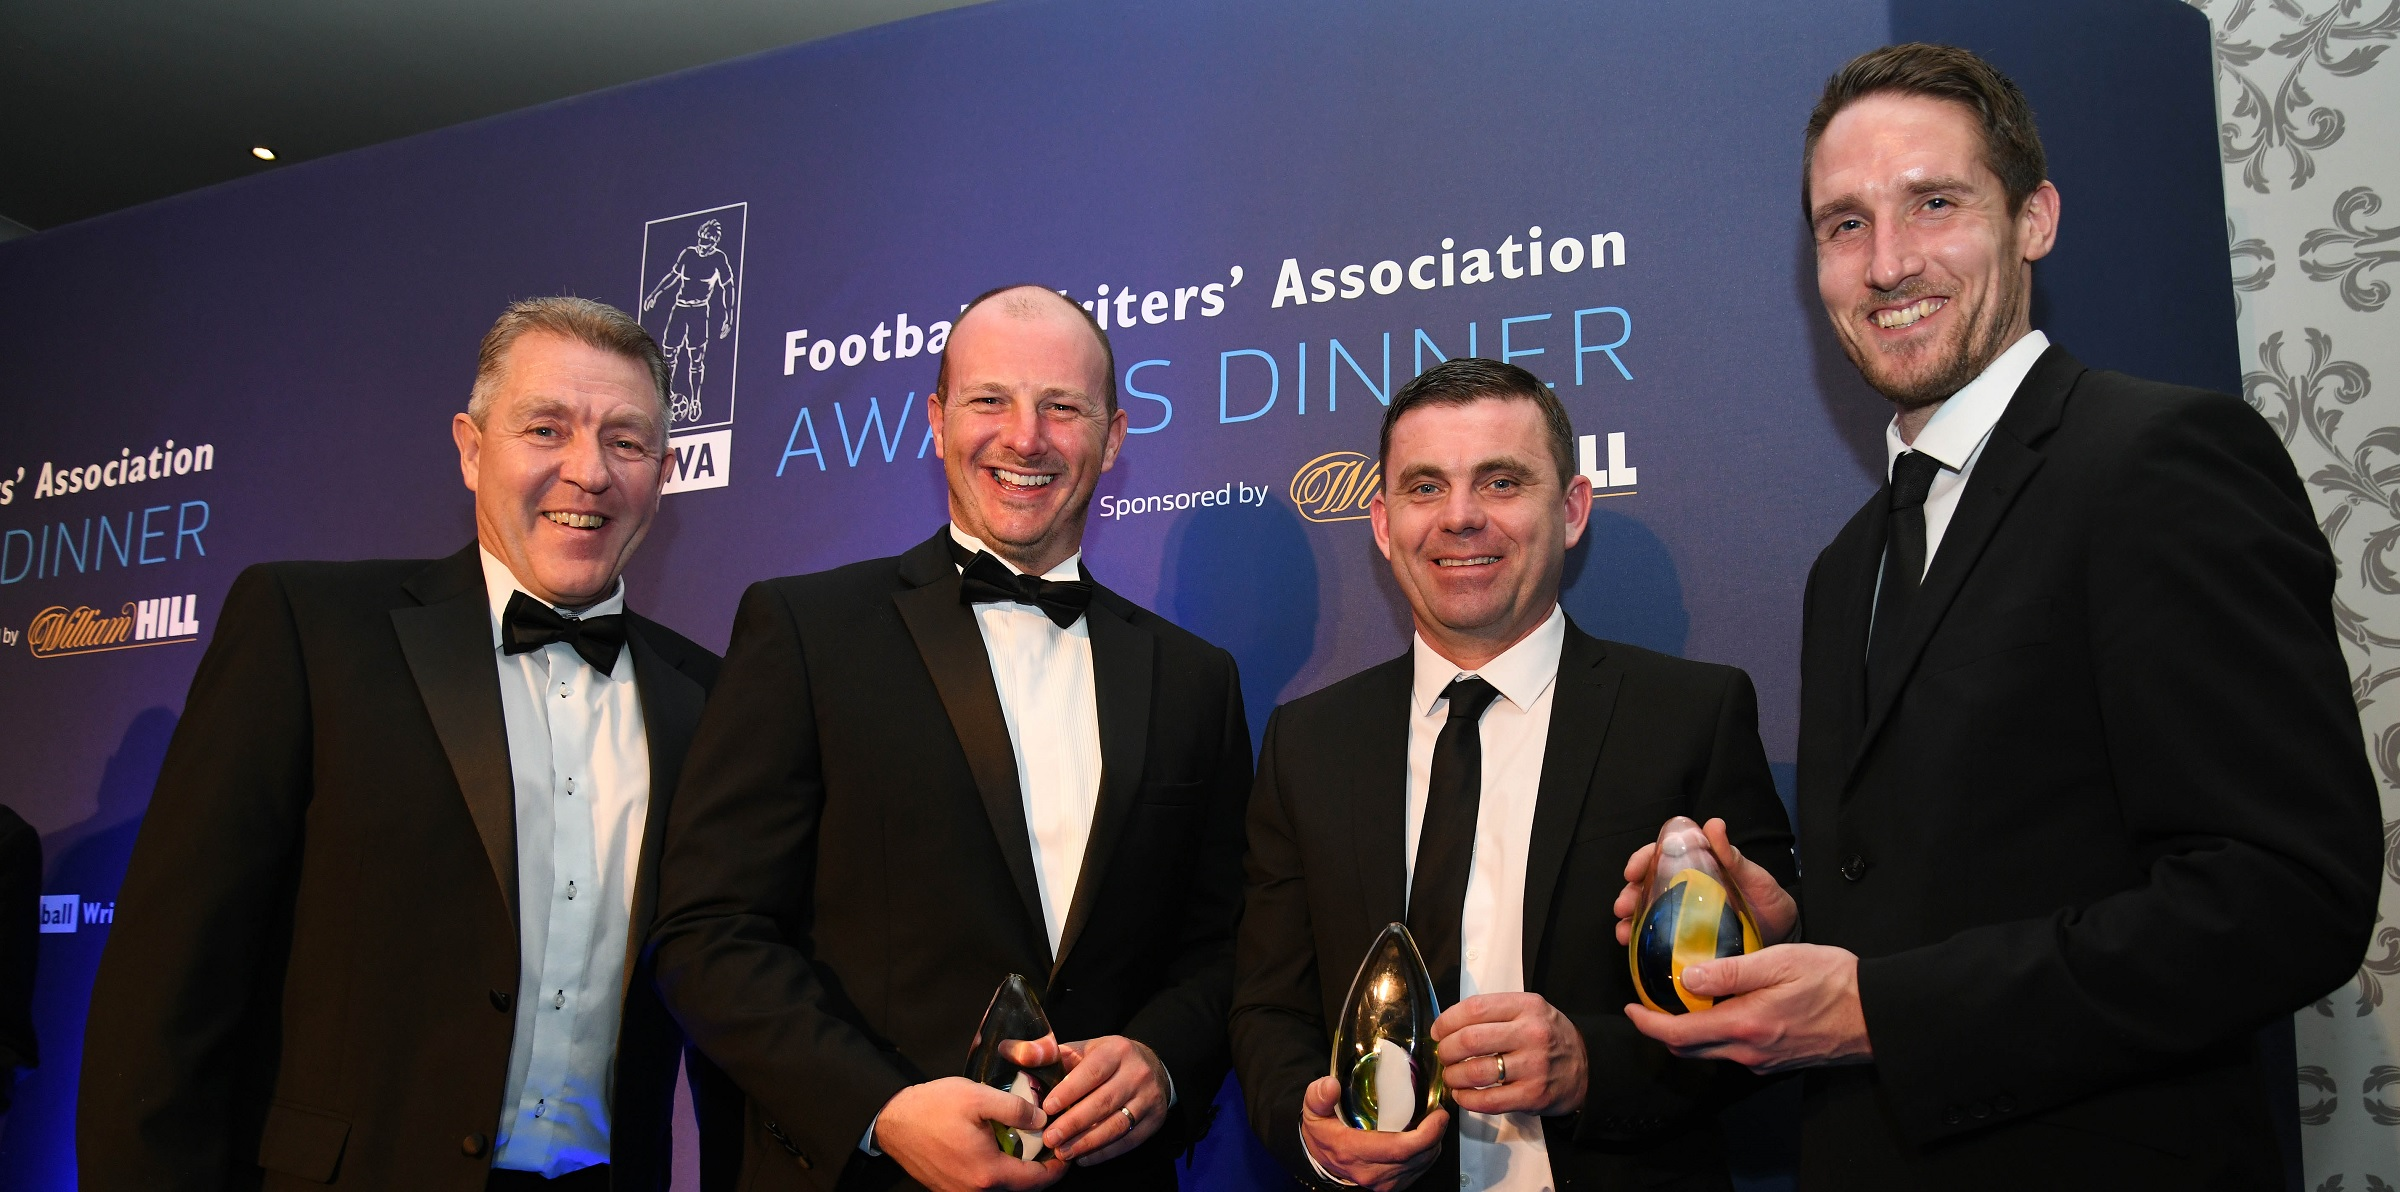 Club recognised at North East Football Writers' Association Awards